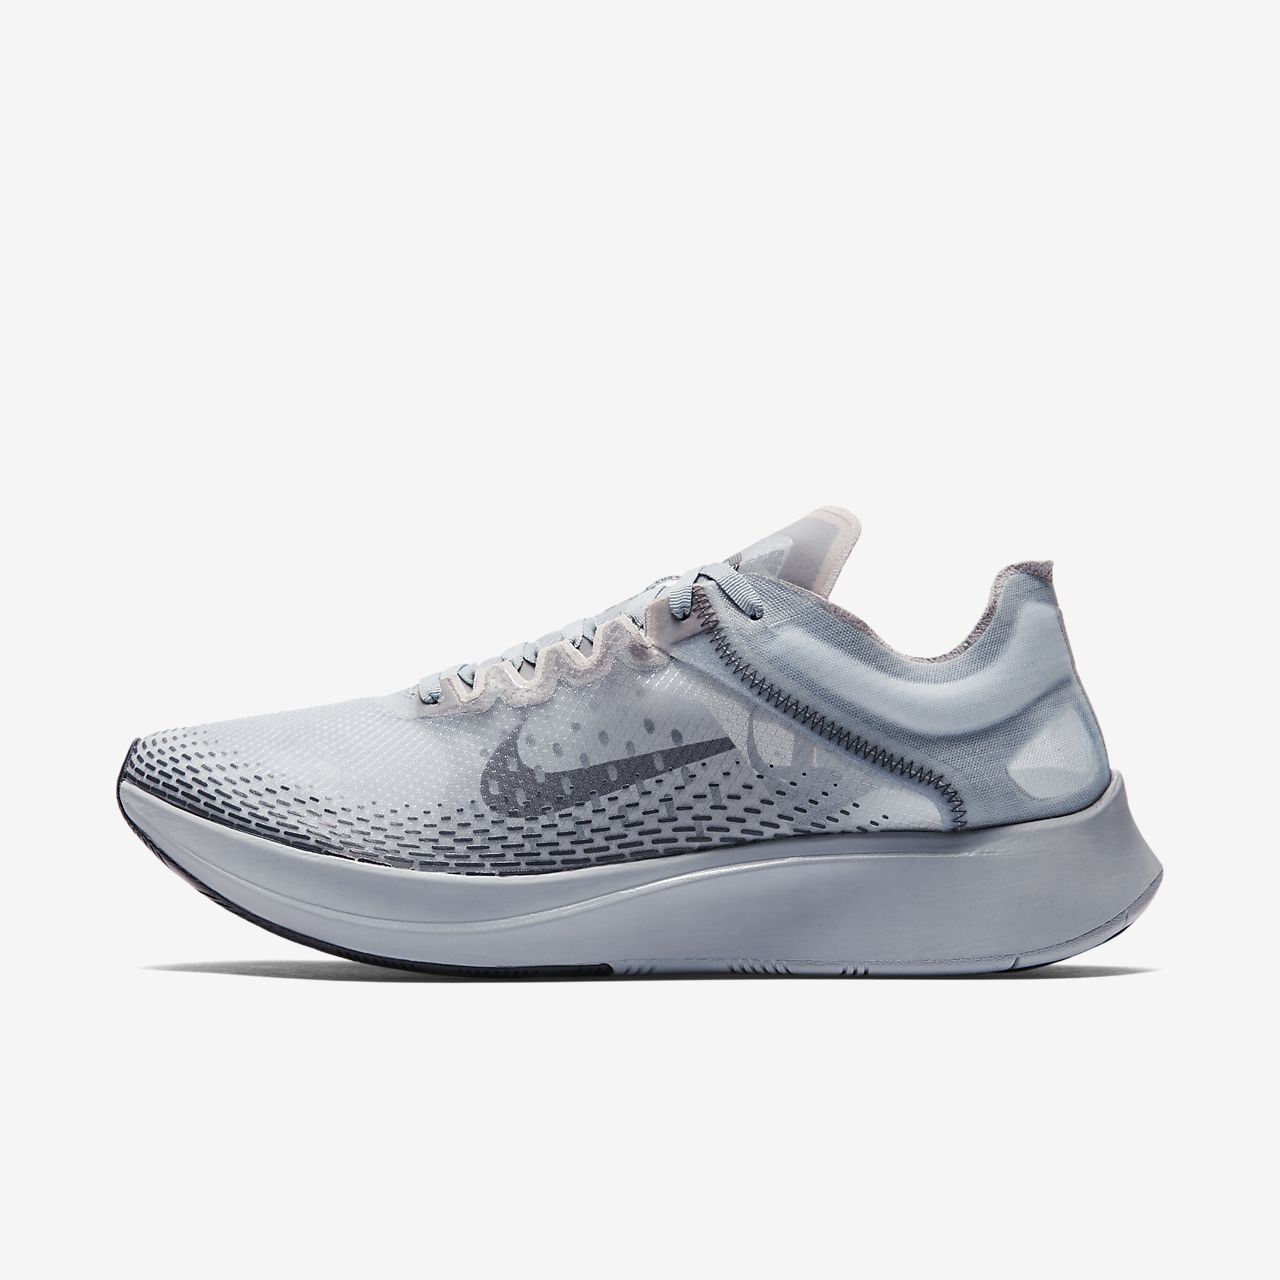 Sapatilhas de running Nike Zoom Fly SP Fast